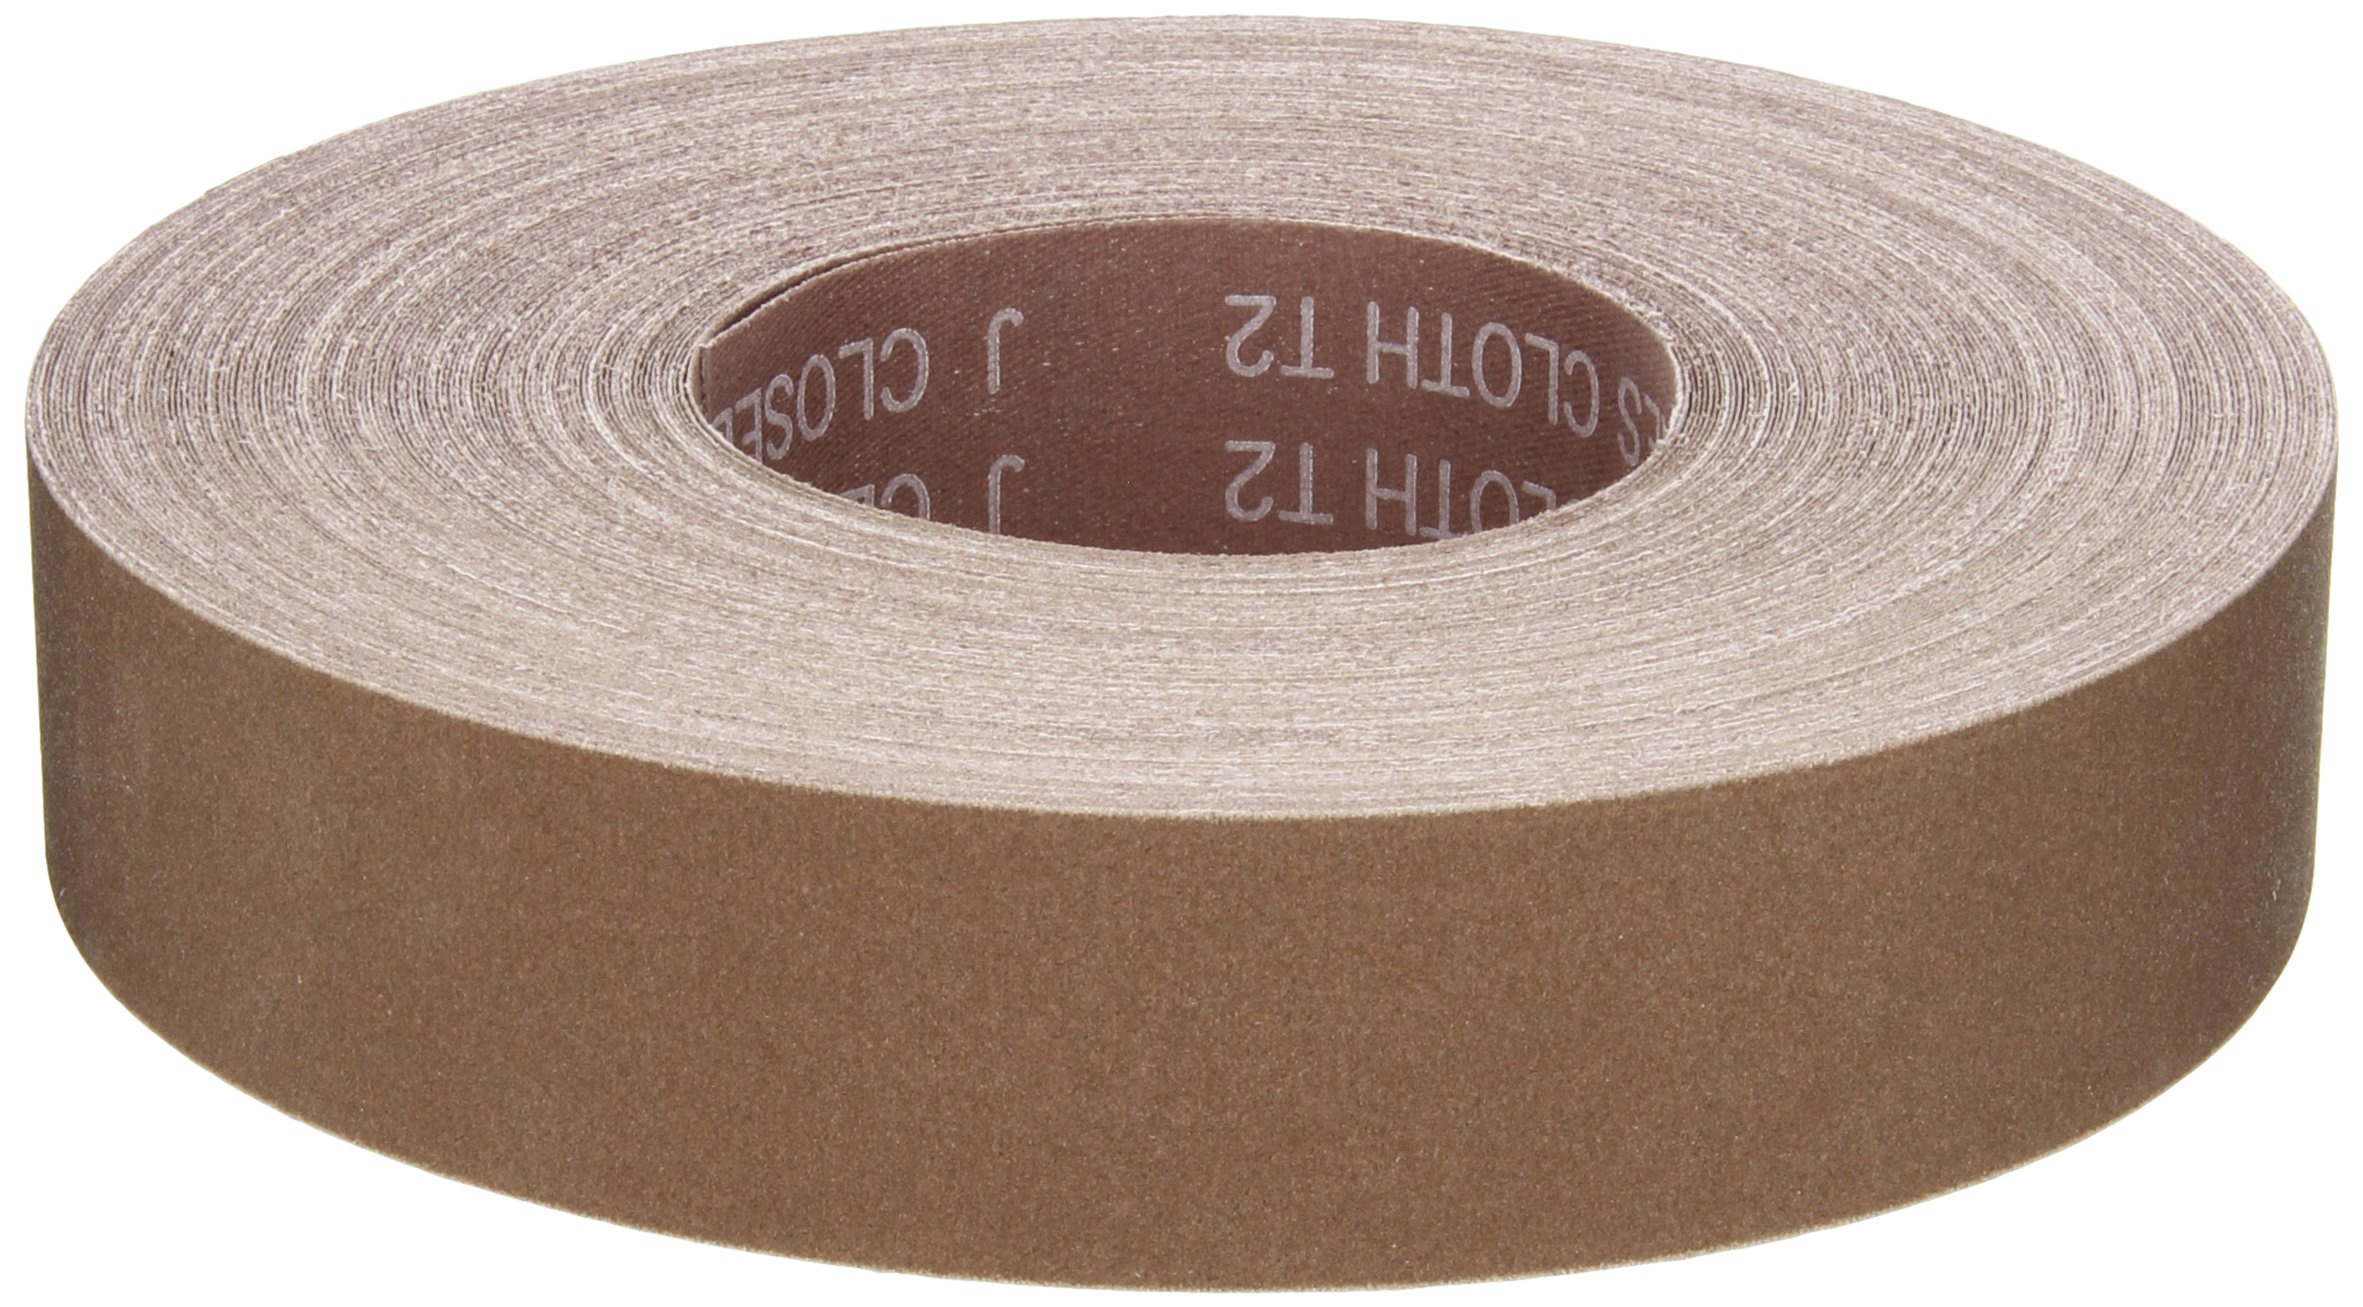 Norton K225 Metalite Abrasive Roll, Cloth Backing, Aluminum Oxide, 1-1/2'' Width x 50yd Length, Grit P240 (Pack of 5)